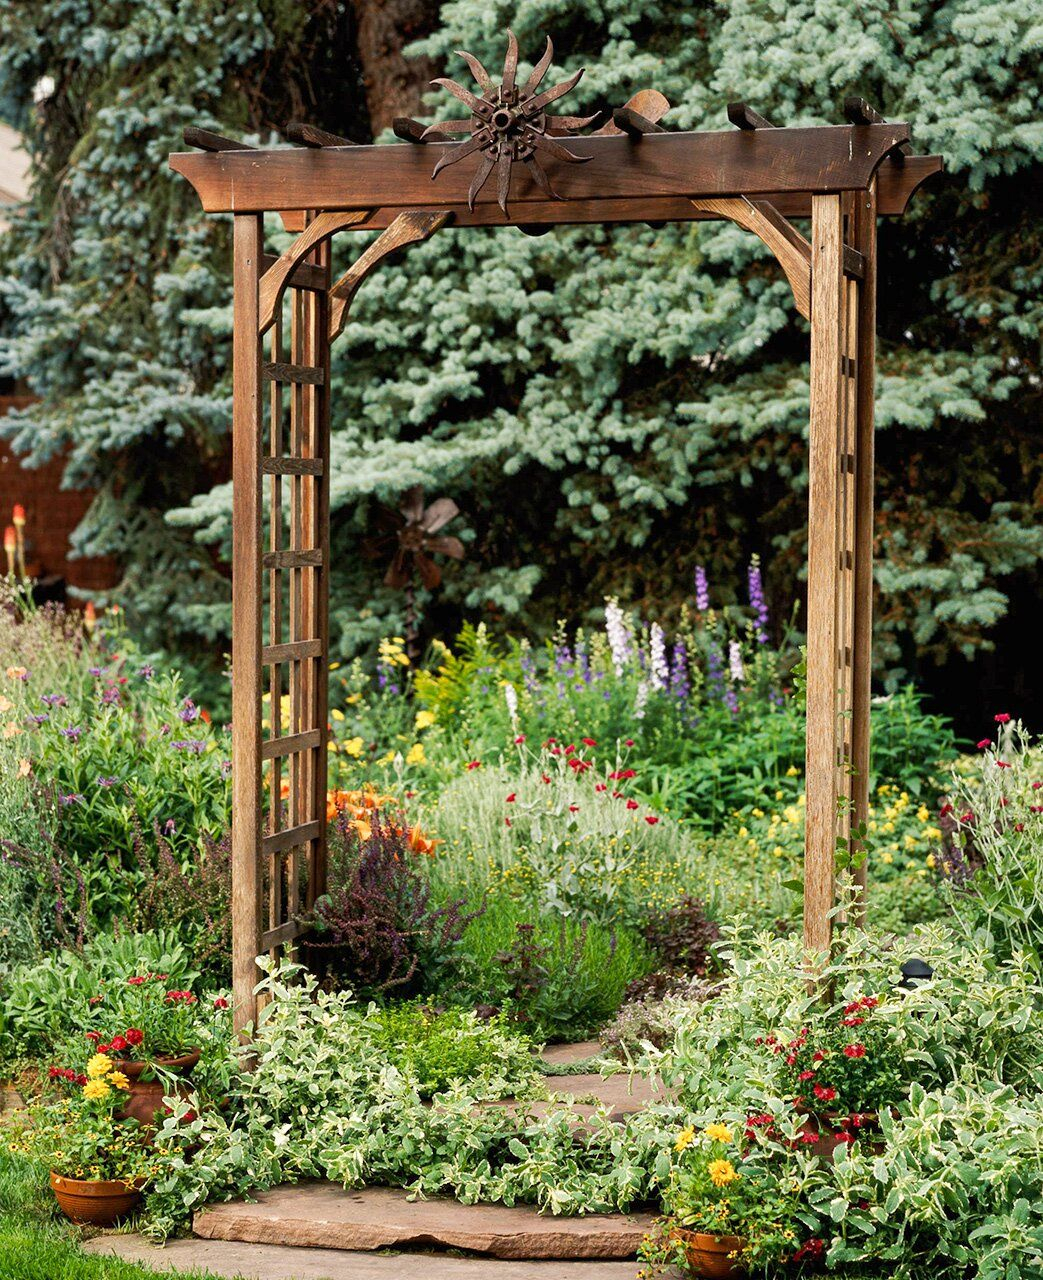 20 Gorgeous Arbor Ideas for an Enchanting Outdoor Space is part of Garden arbor, Wooden arbor, Garden arch, Wooden garden, Front yard landscaping, Garden planning - Give your yard a boost of style and added function with a beautiful garden arbor  Whether standing alone or covered with climbing vines and flowers, these outdoor structures add a striking focal point to your yard  These arbor ideas will enhance your garden with charming appeal